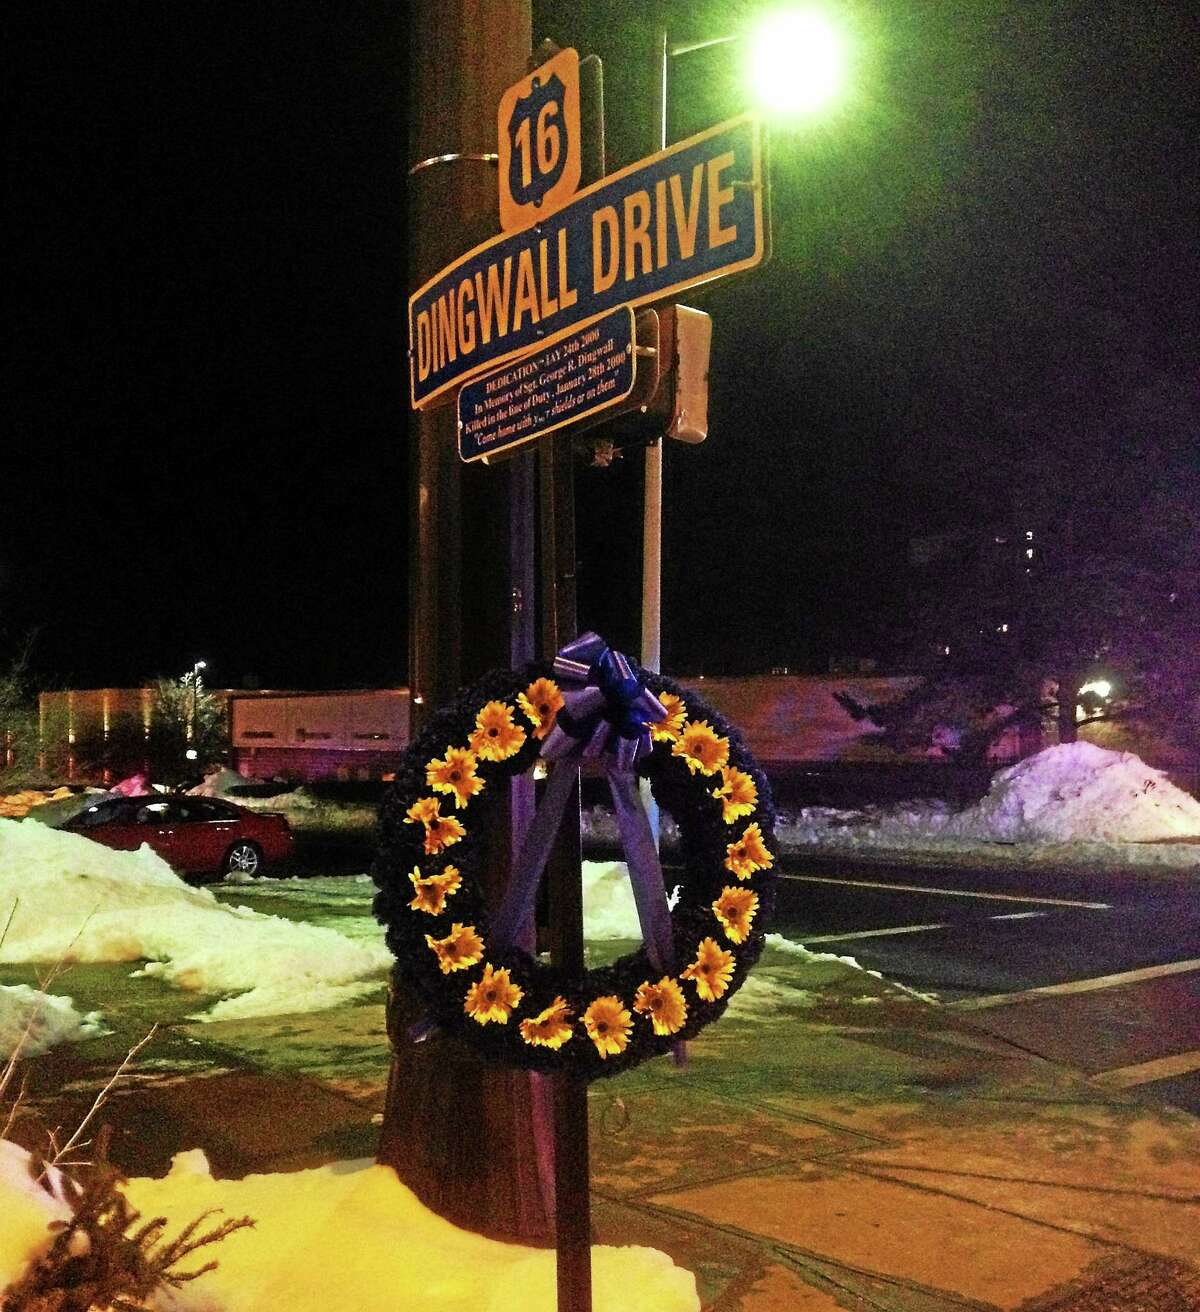 Dingwall Drive in Middletown is named for the officer who died in the line of duty on Jan. 28, 2000, when his cruiser crashed while he pursued two burglary suspects as they fled south on Route 9.